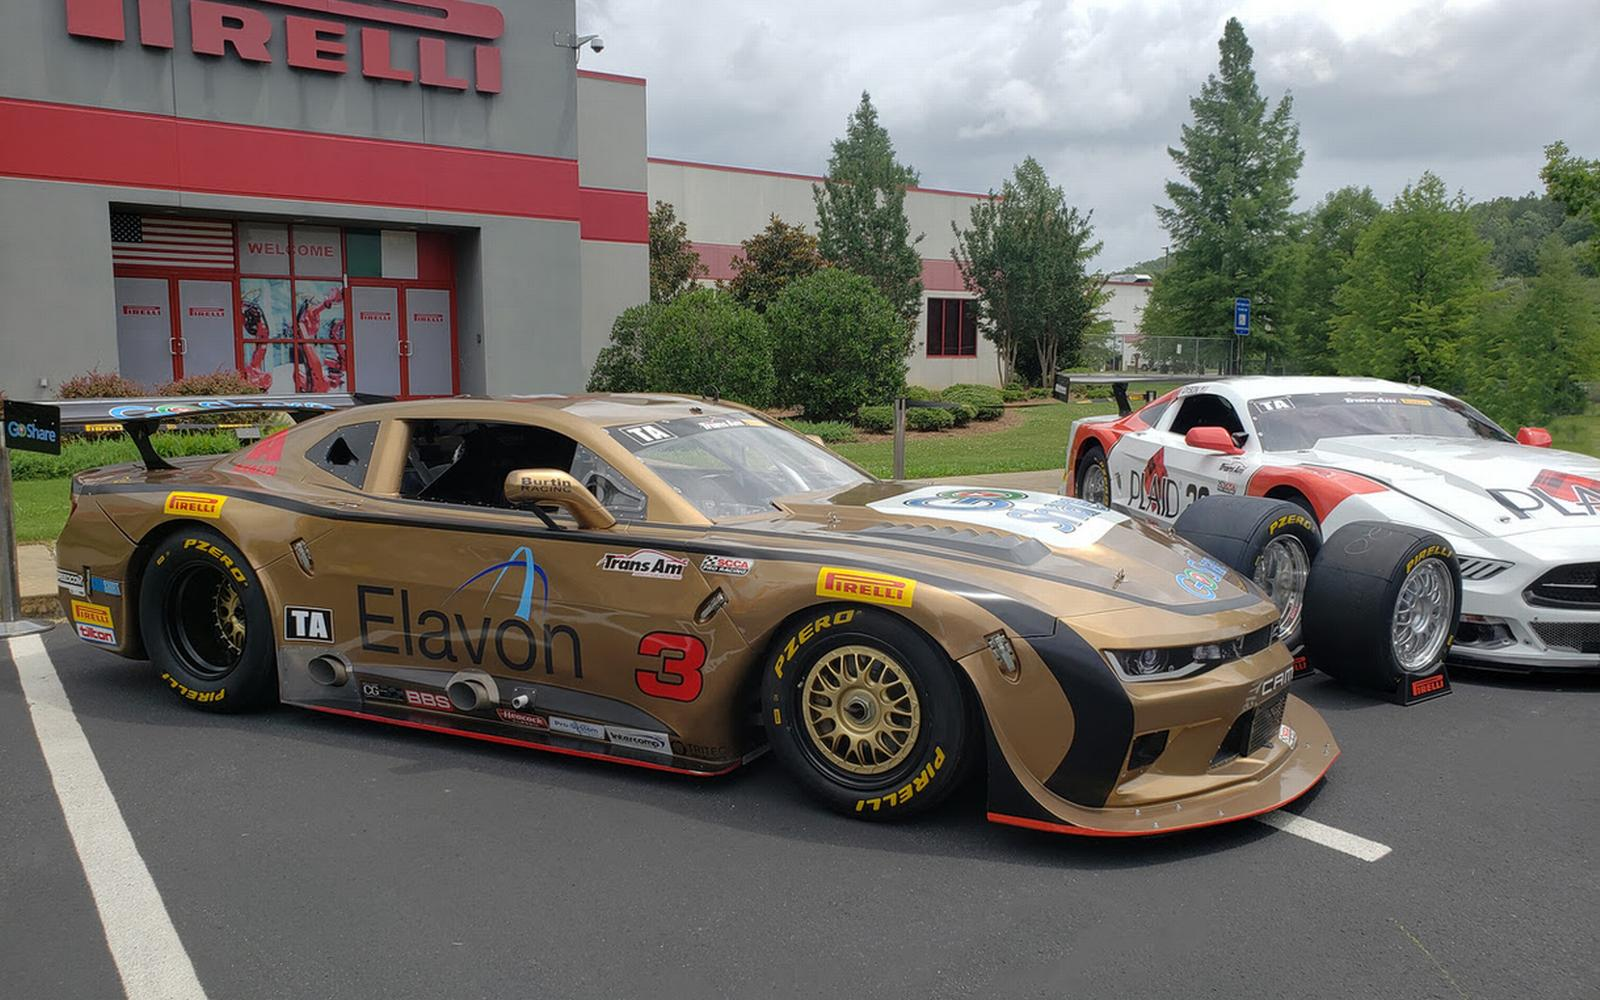 Burtin Racing Takes Center Stage as Pirelli Deal Gives Trans Am Major Boost